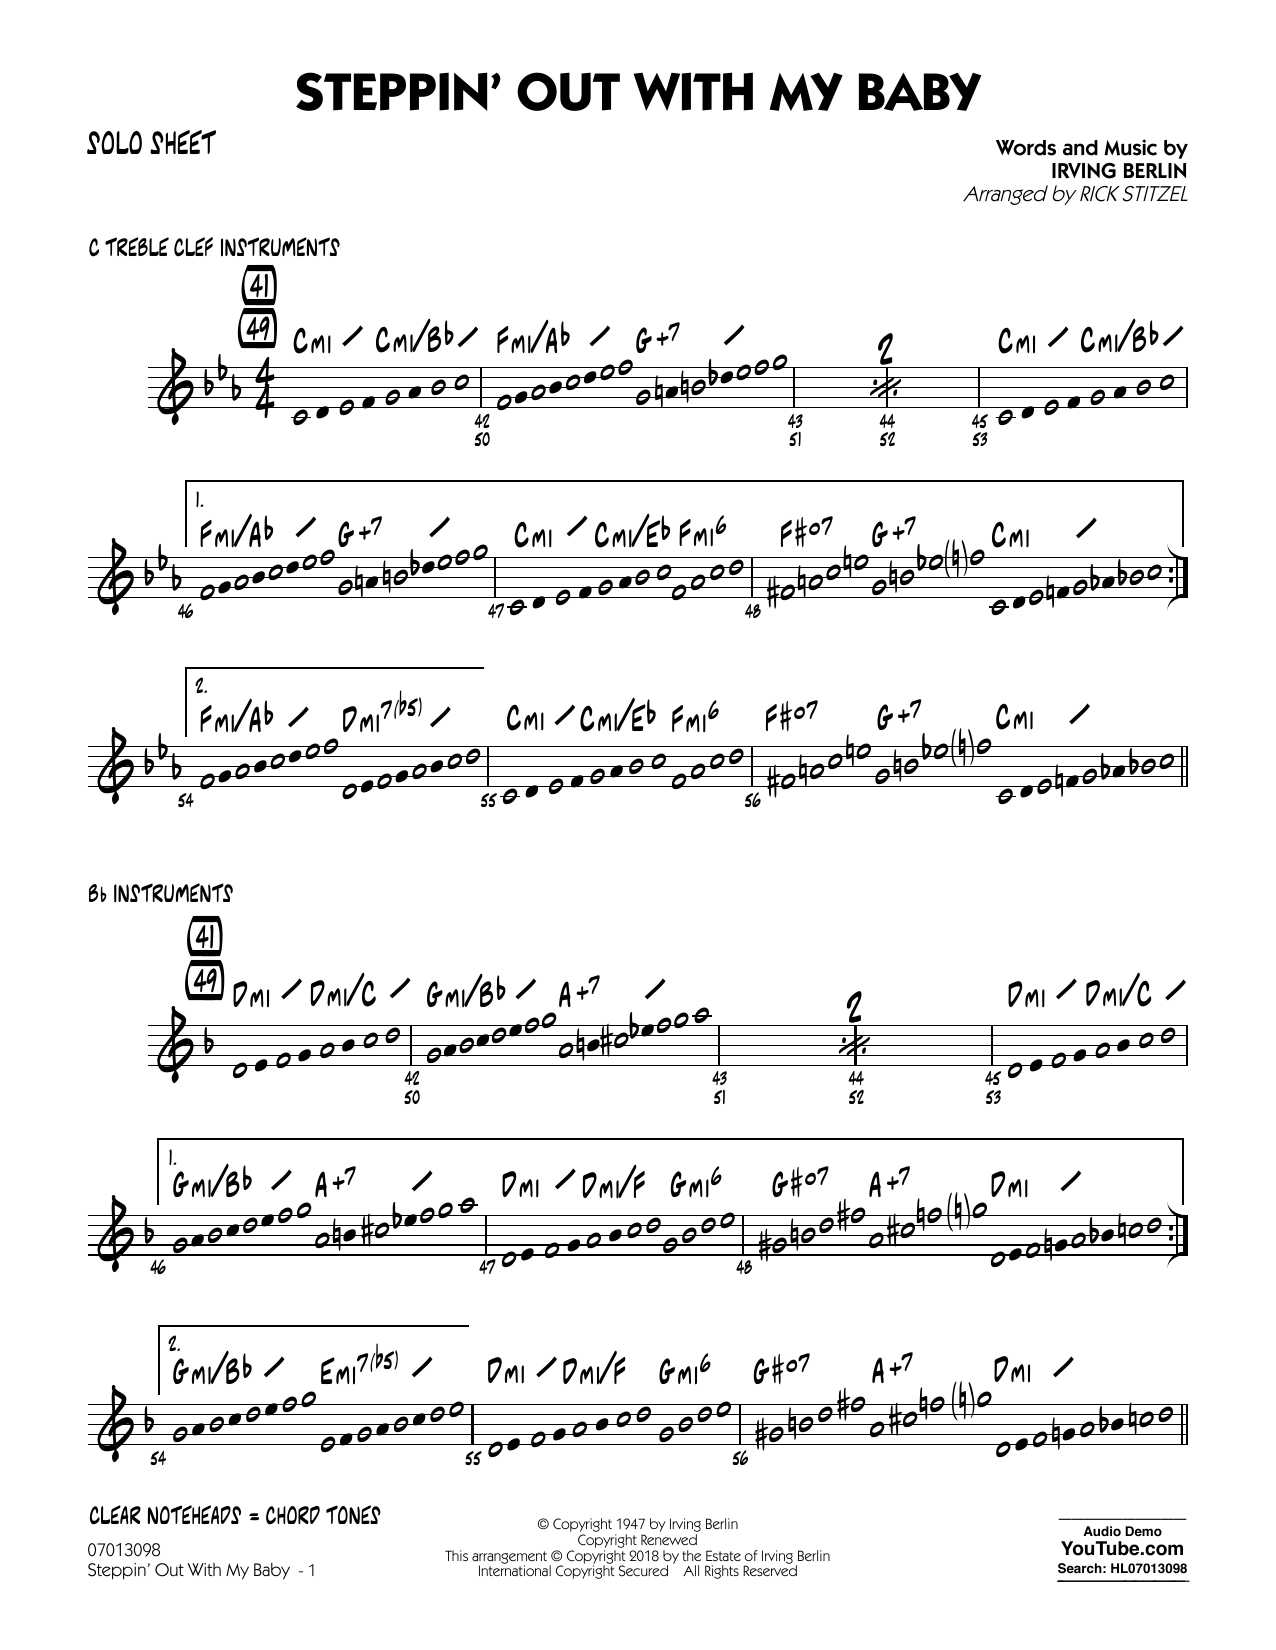 Rick Stitzel Steppin' Out with My Baby - Solo Sheet sheet music notes printable PDF score